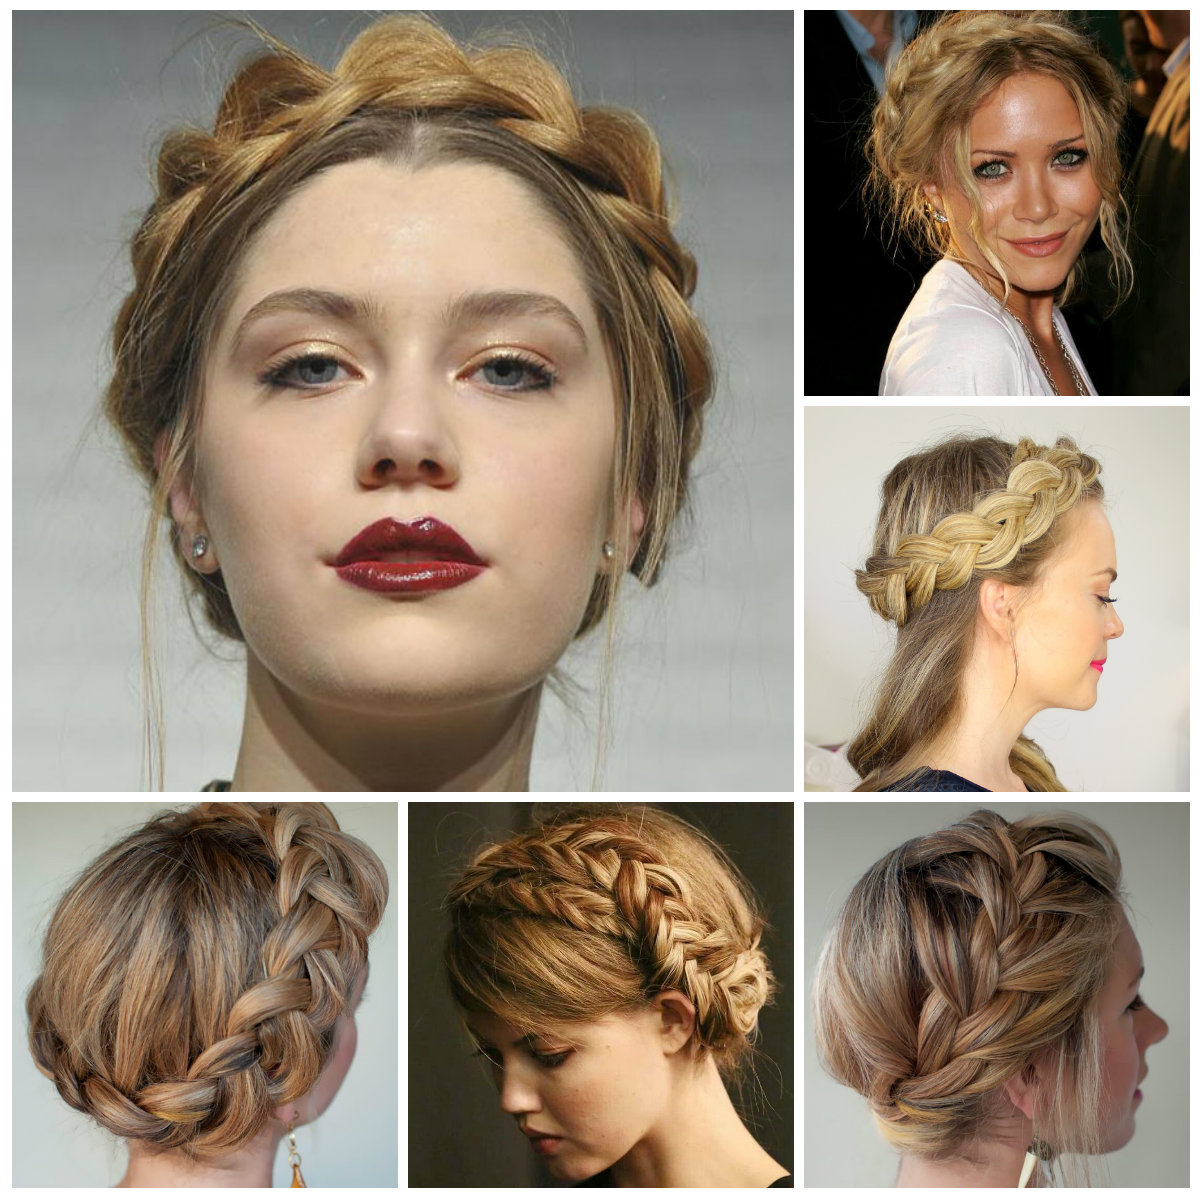 2019 Haircuts With 2020 Milkmaid Crown Braided Hairstyles (View 9 of 20)